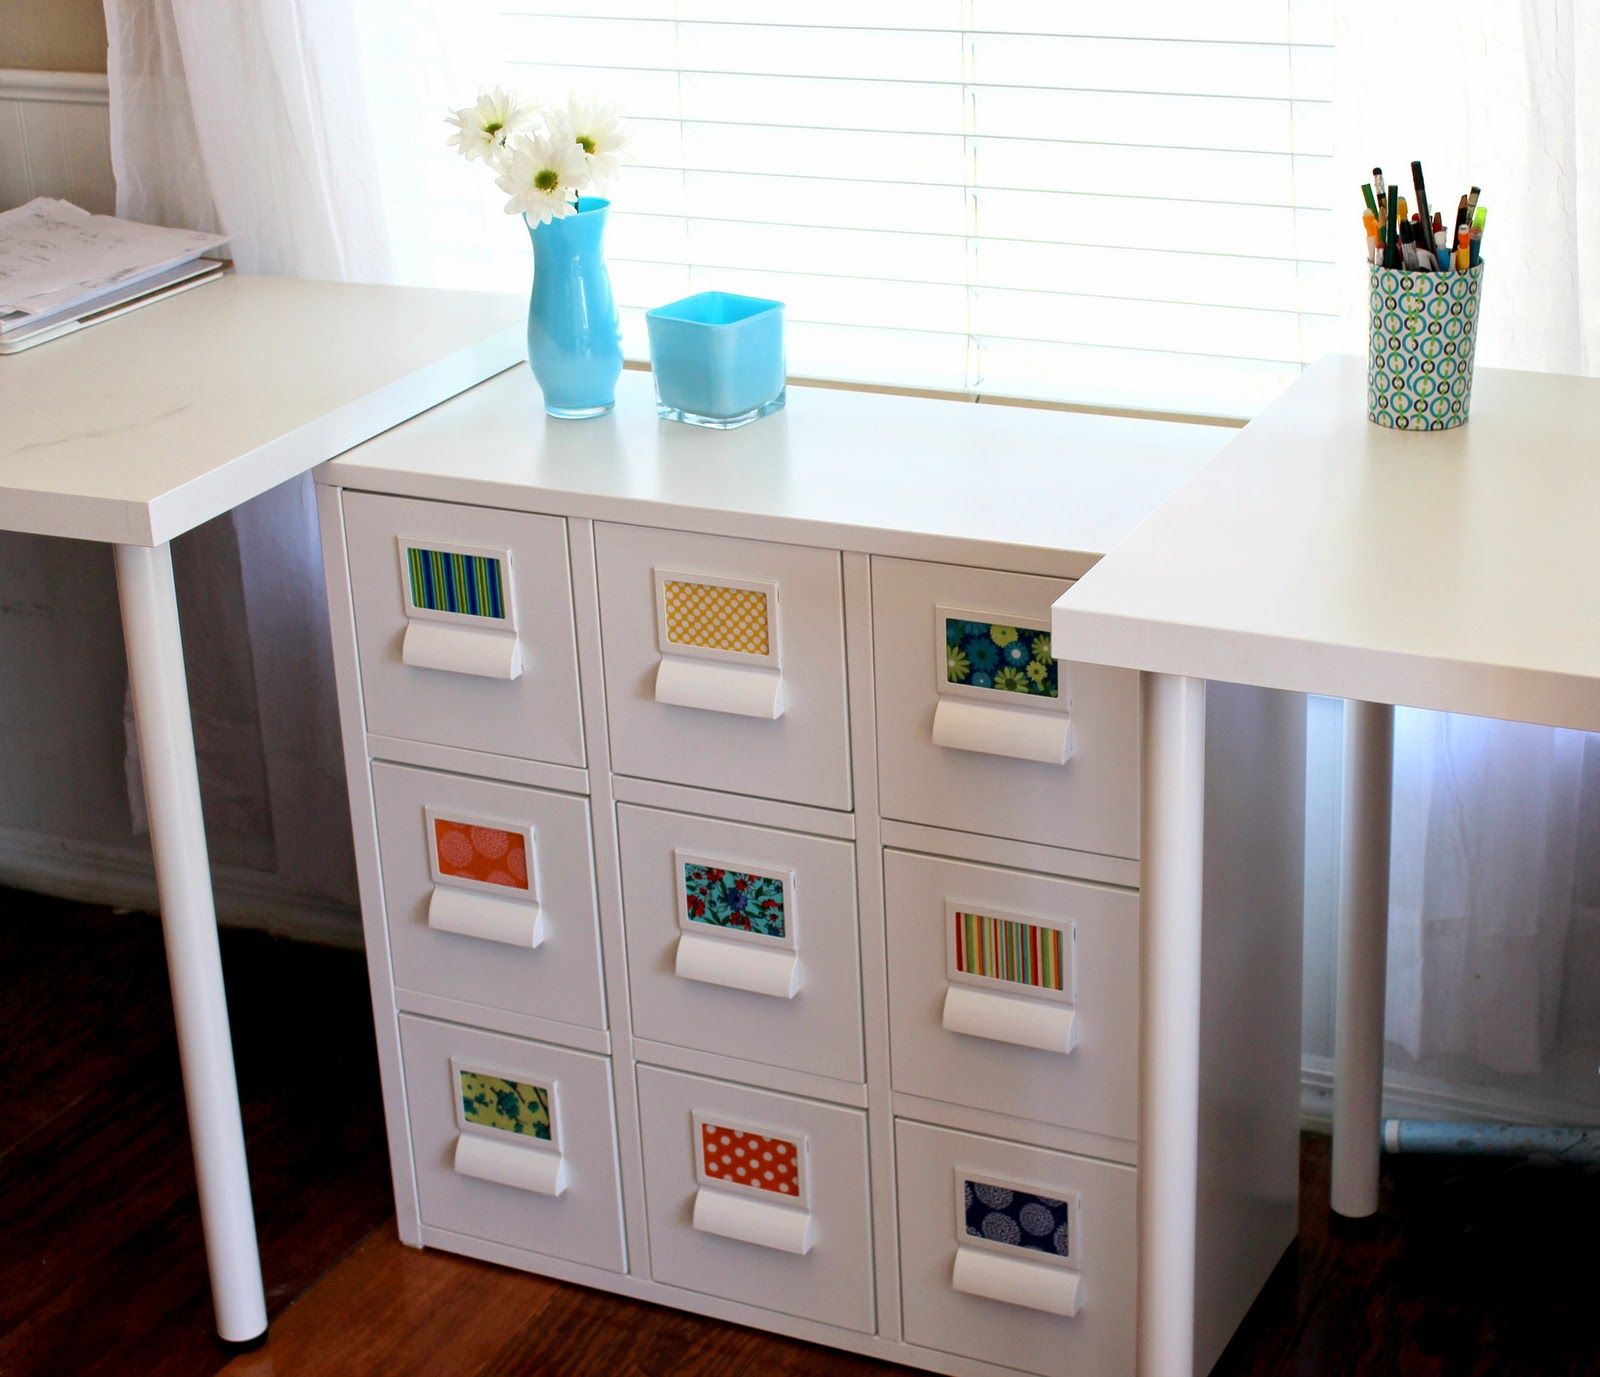 Ikea Sprutt cabinet mod with legs gone and new labels | aktuell ...